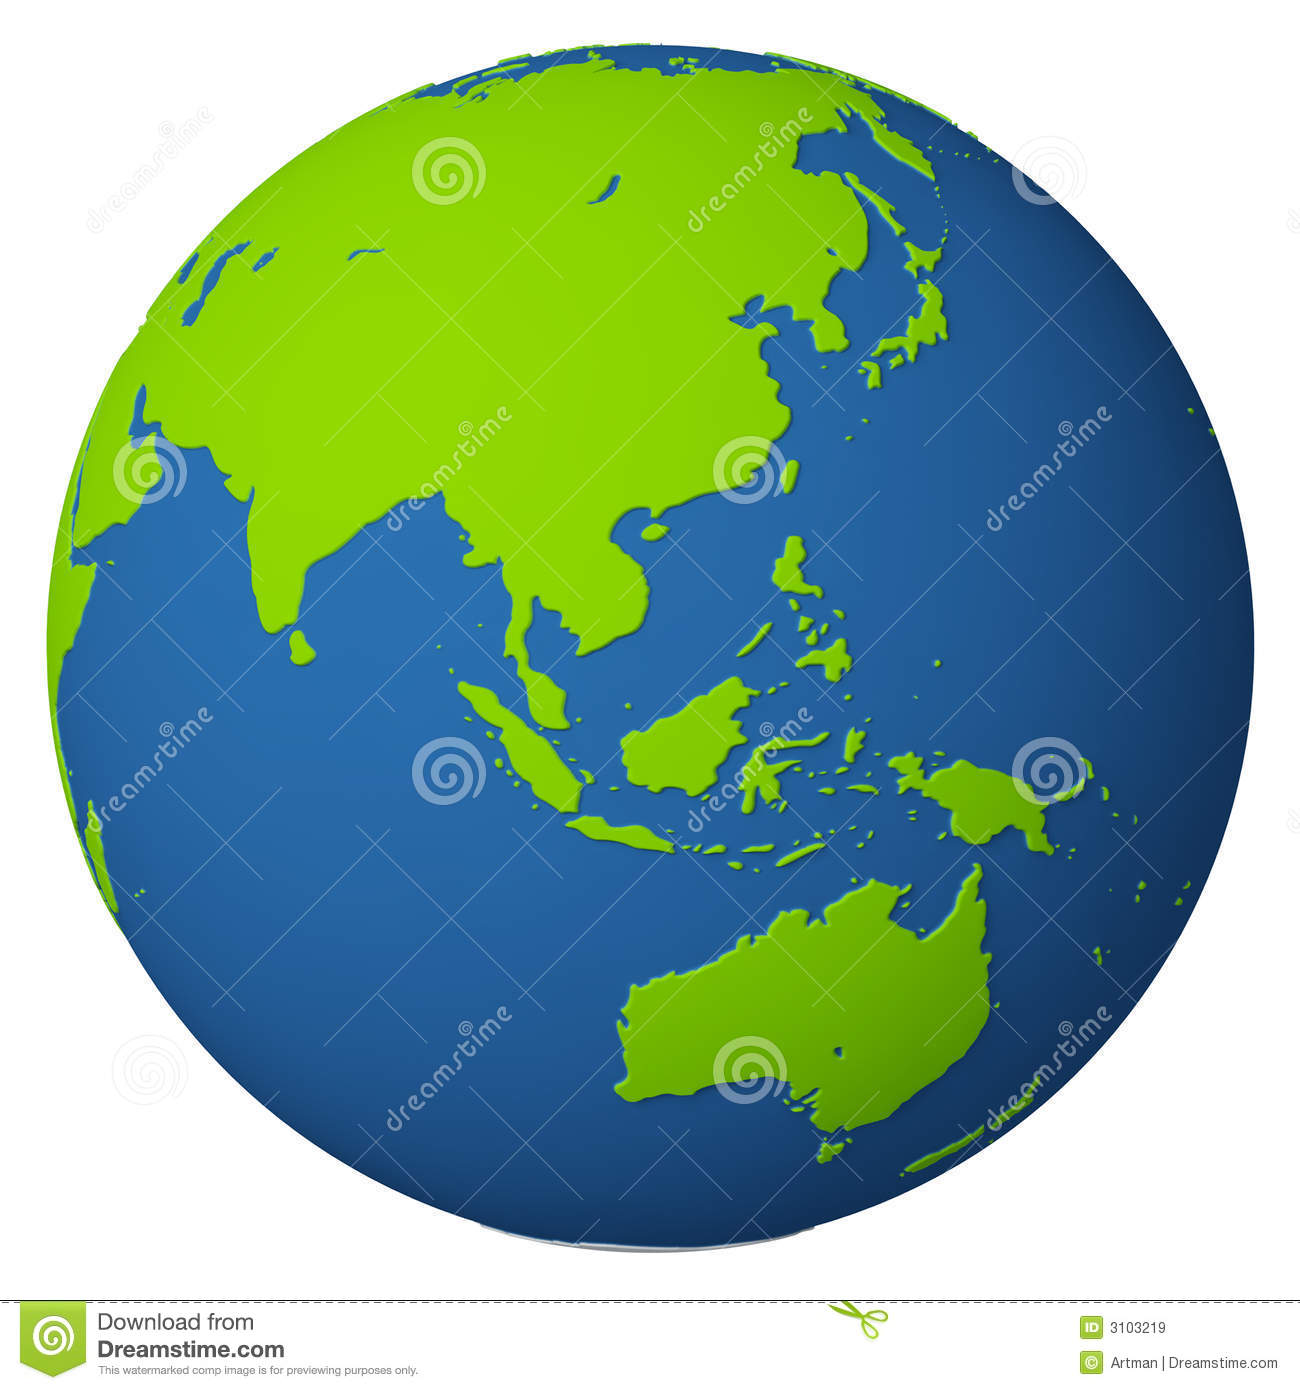 Australia clipart earth.  collection of asia